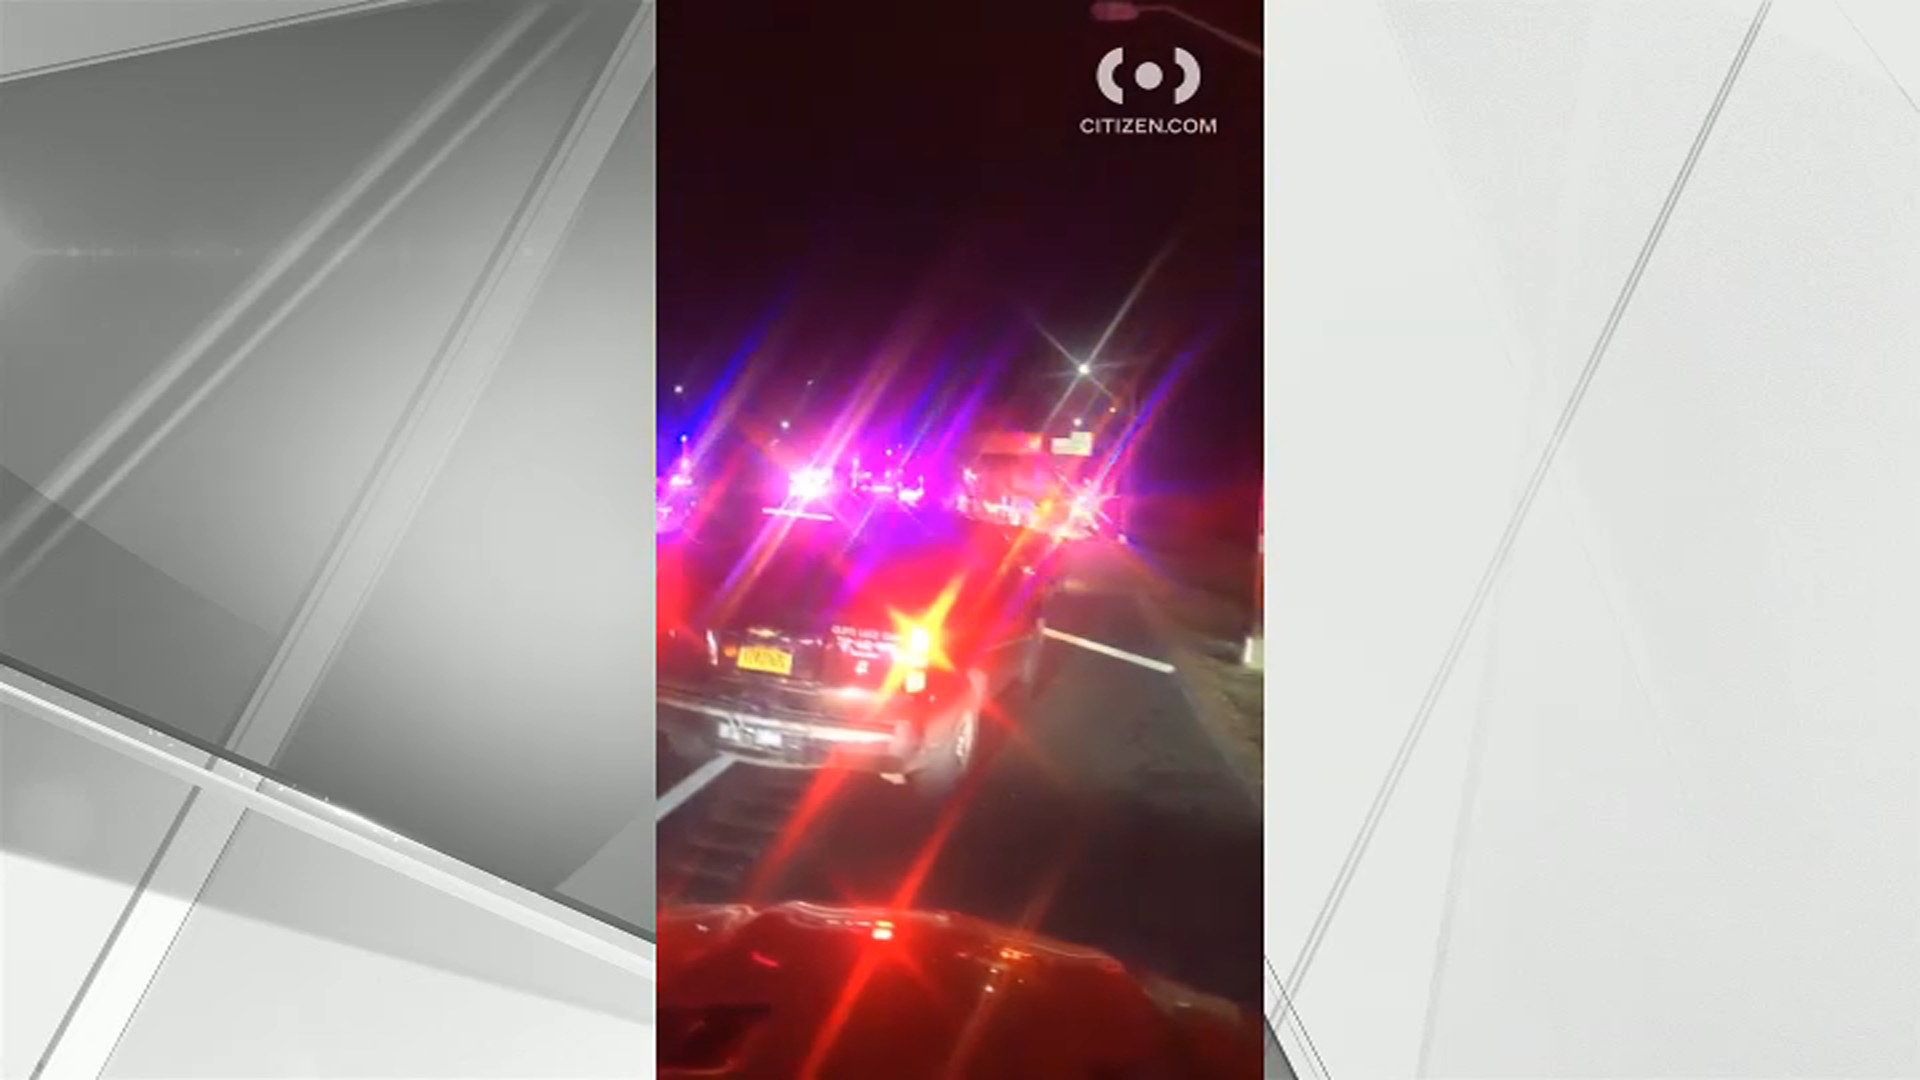 1 Dead After Drunk, Wrong-Way Driver Crashes on Staten Island: NYPD